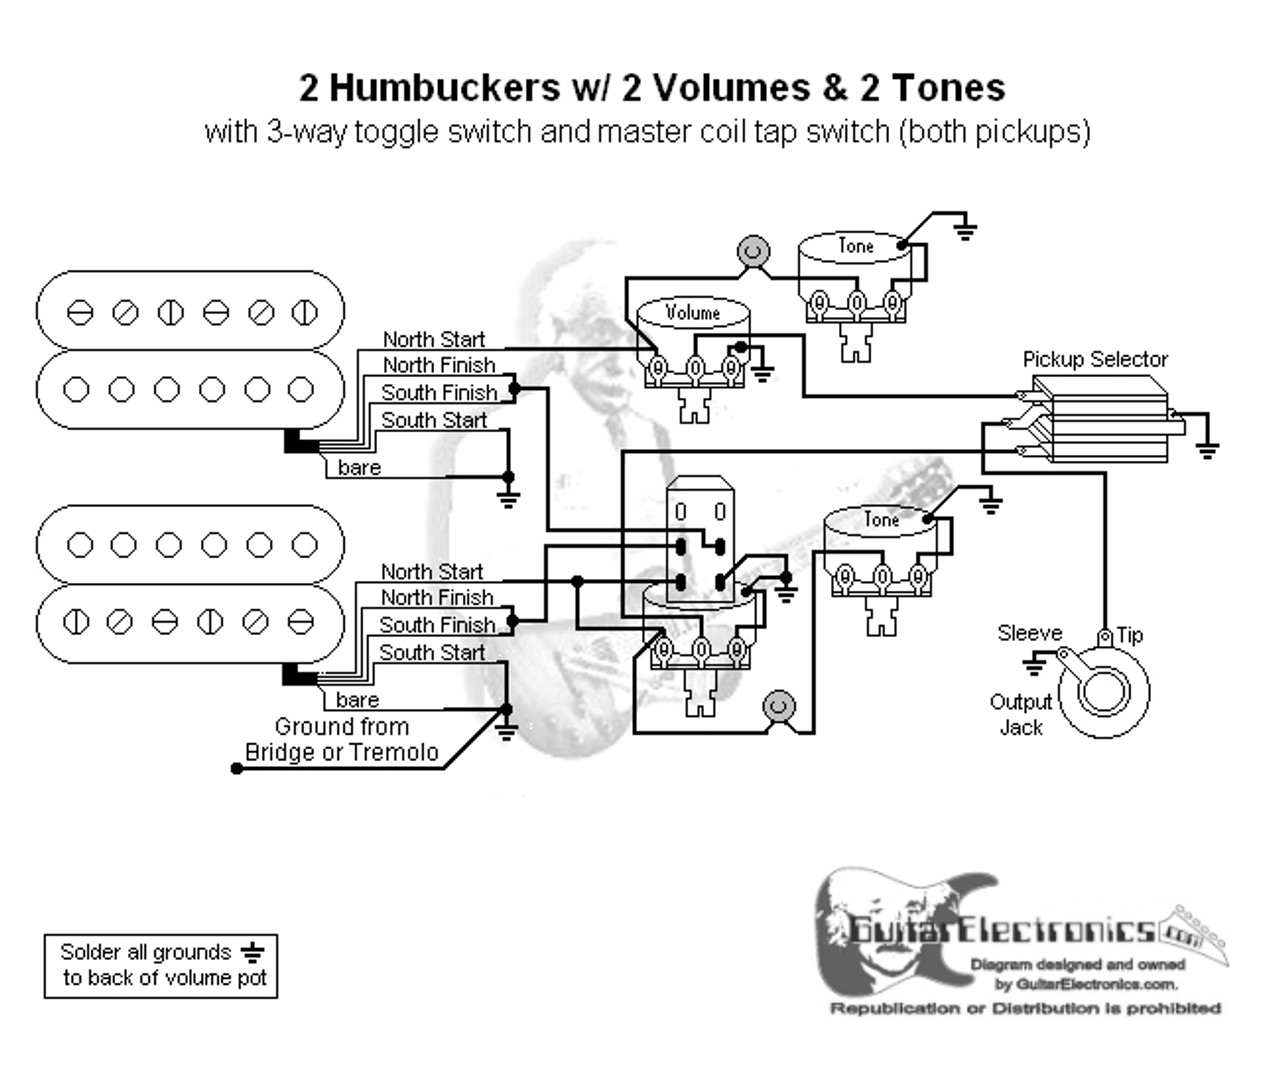 hight resolution of 2 humbuckers 3 way toggle switch 2 volumes 2 tones coil tapwd2hh3t22 01 91616 1470694434 jpg c